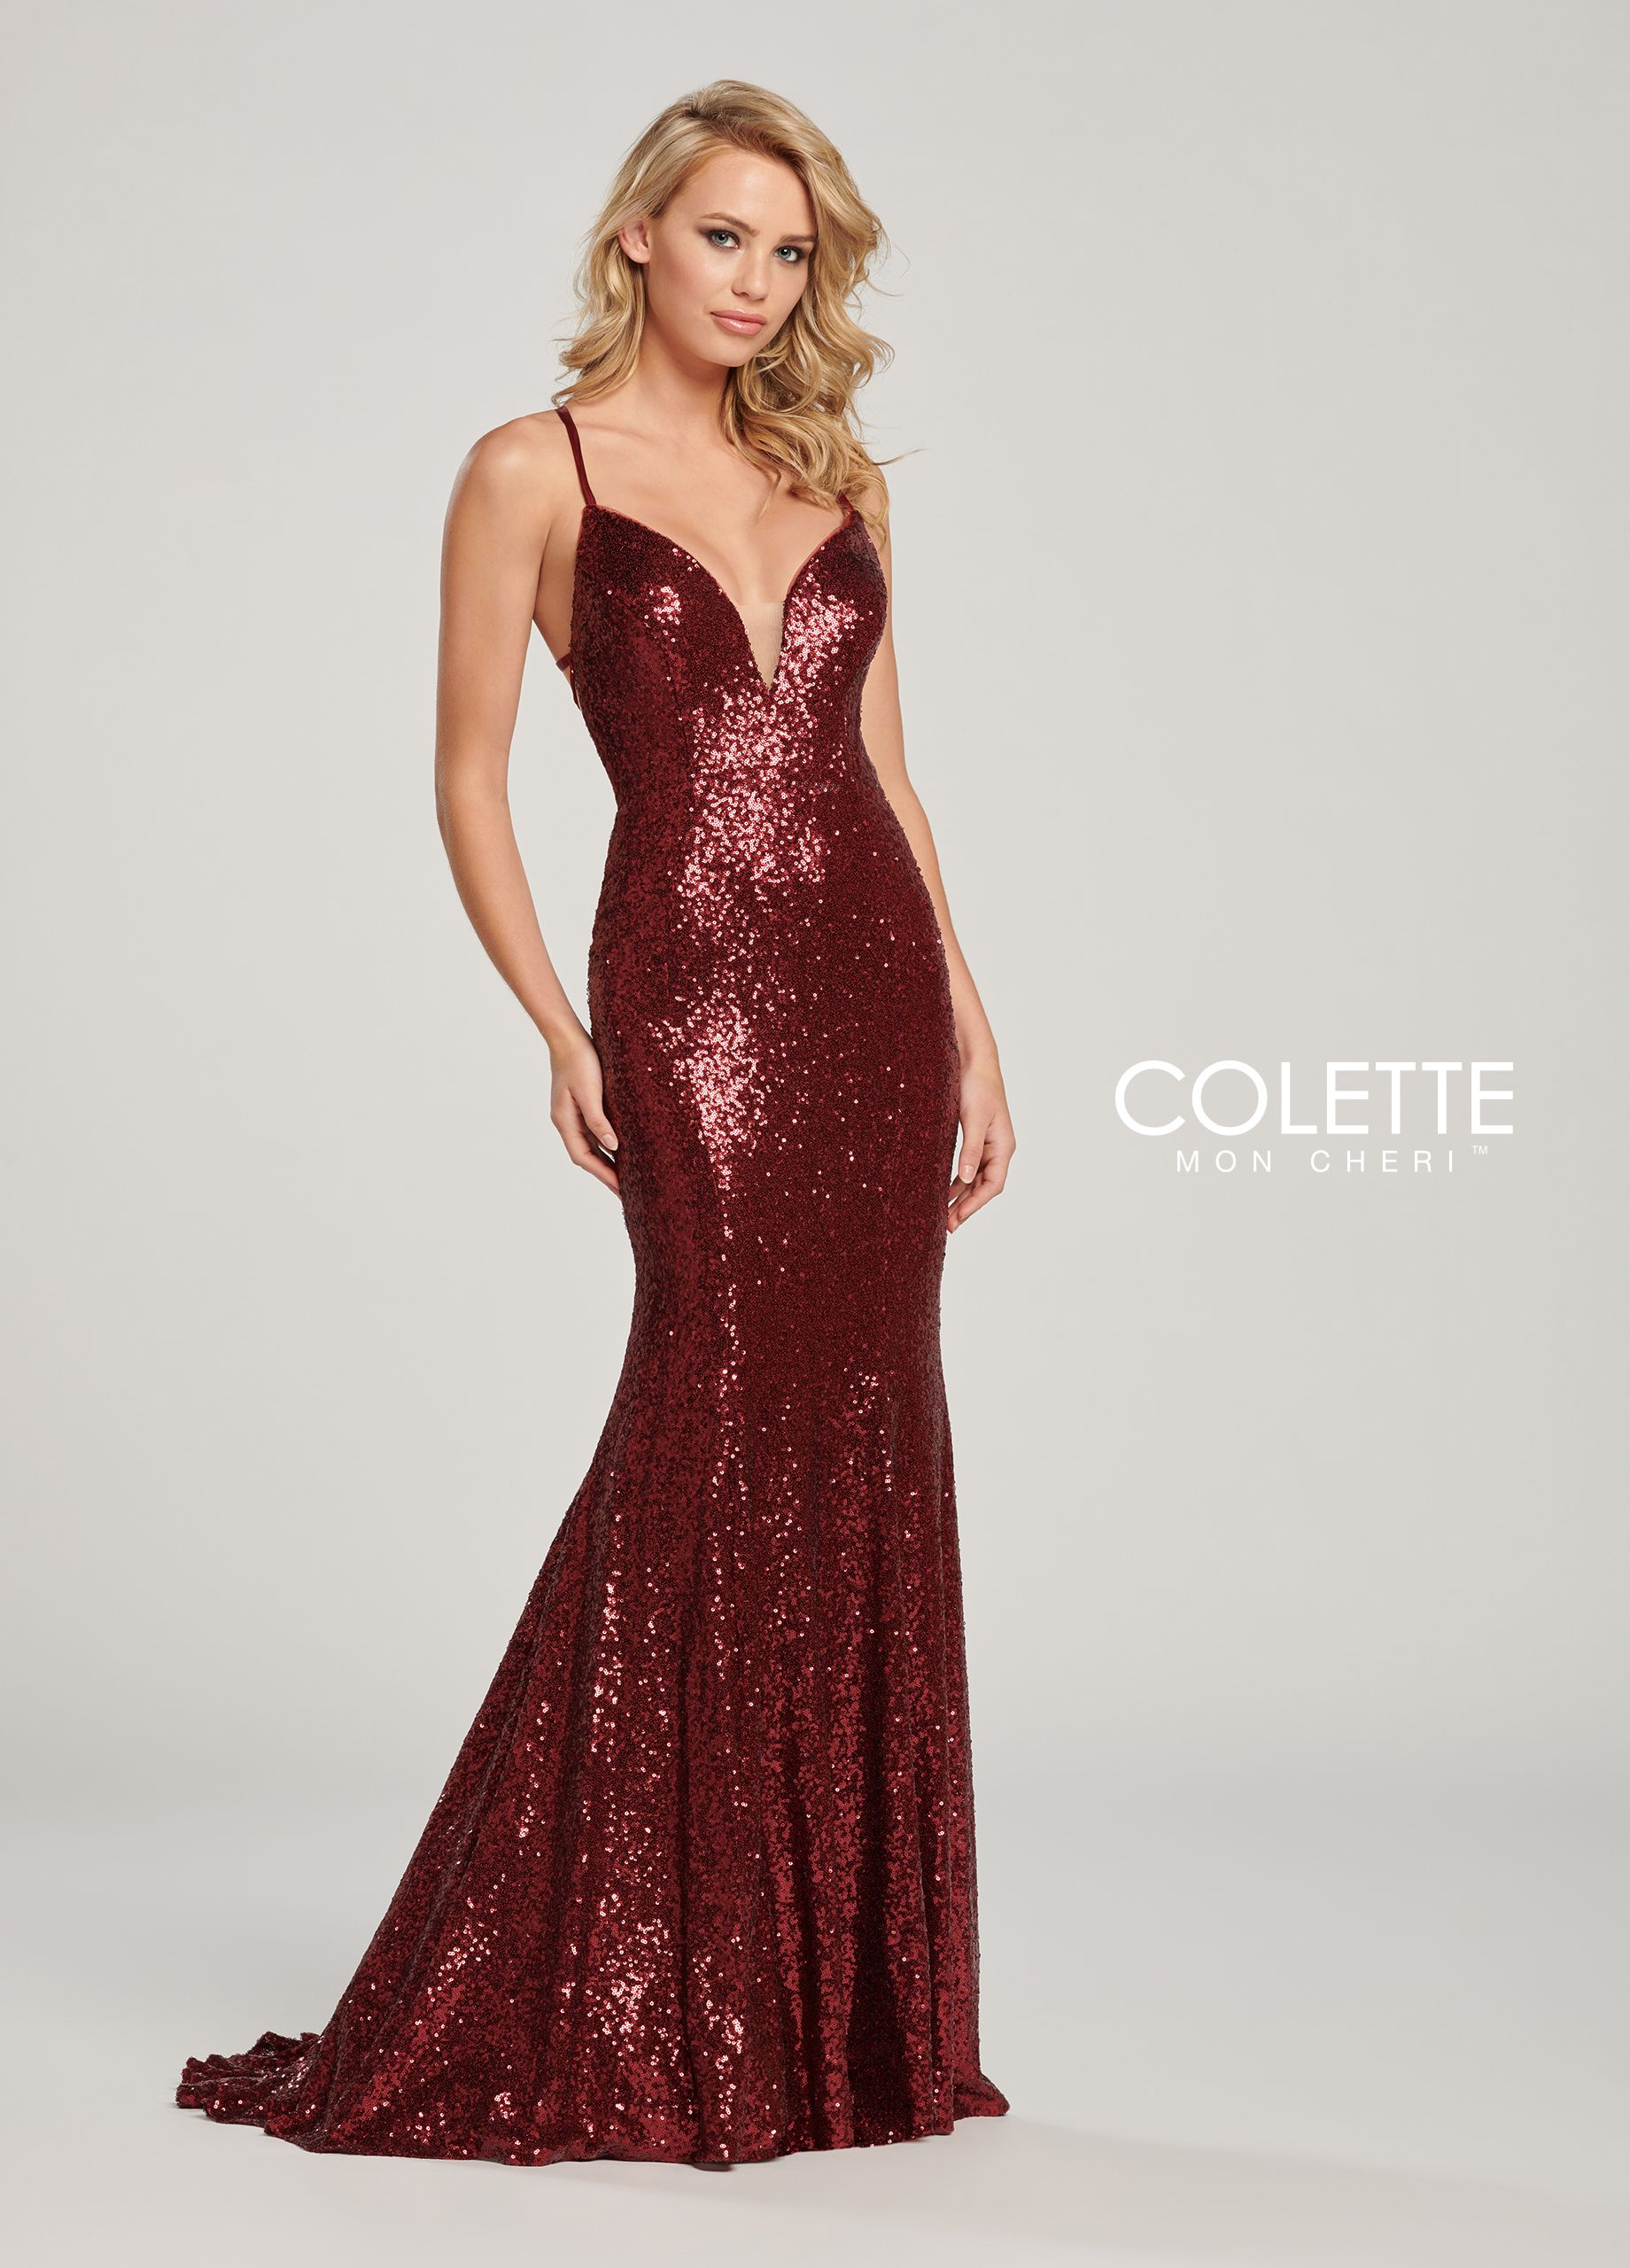 056da92d1004 Colette for Mon Cheri CL19830 - Sleeveless sequin fit and flare gown with  deep illusion v-neck, crisscross lace up open back, small train